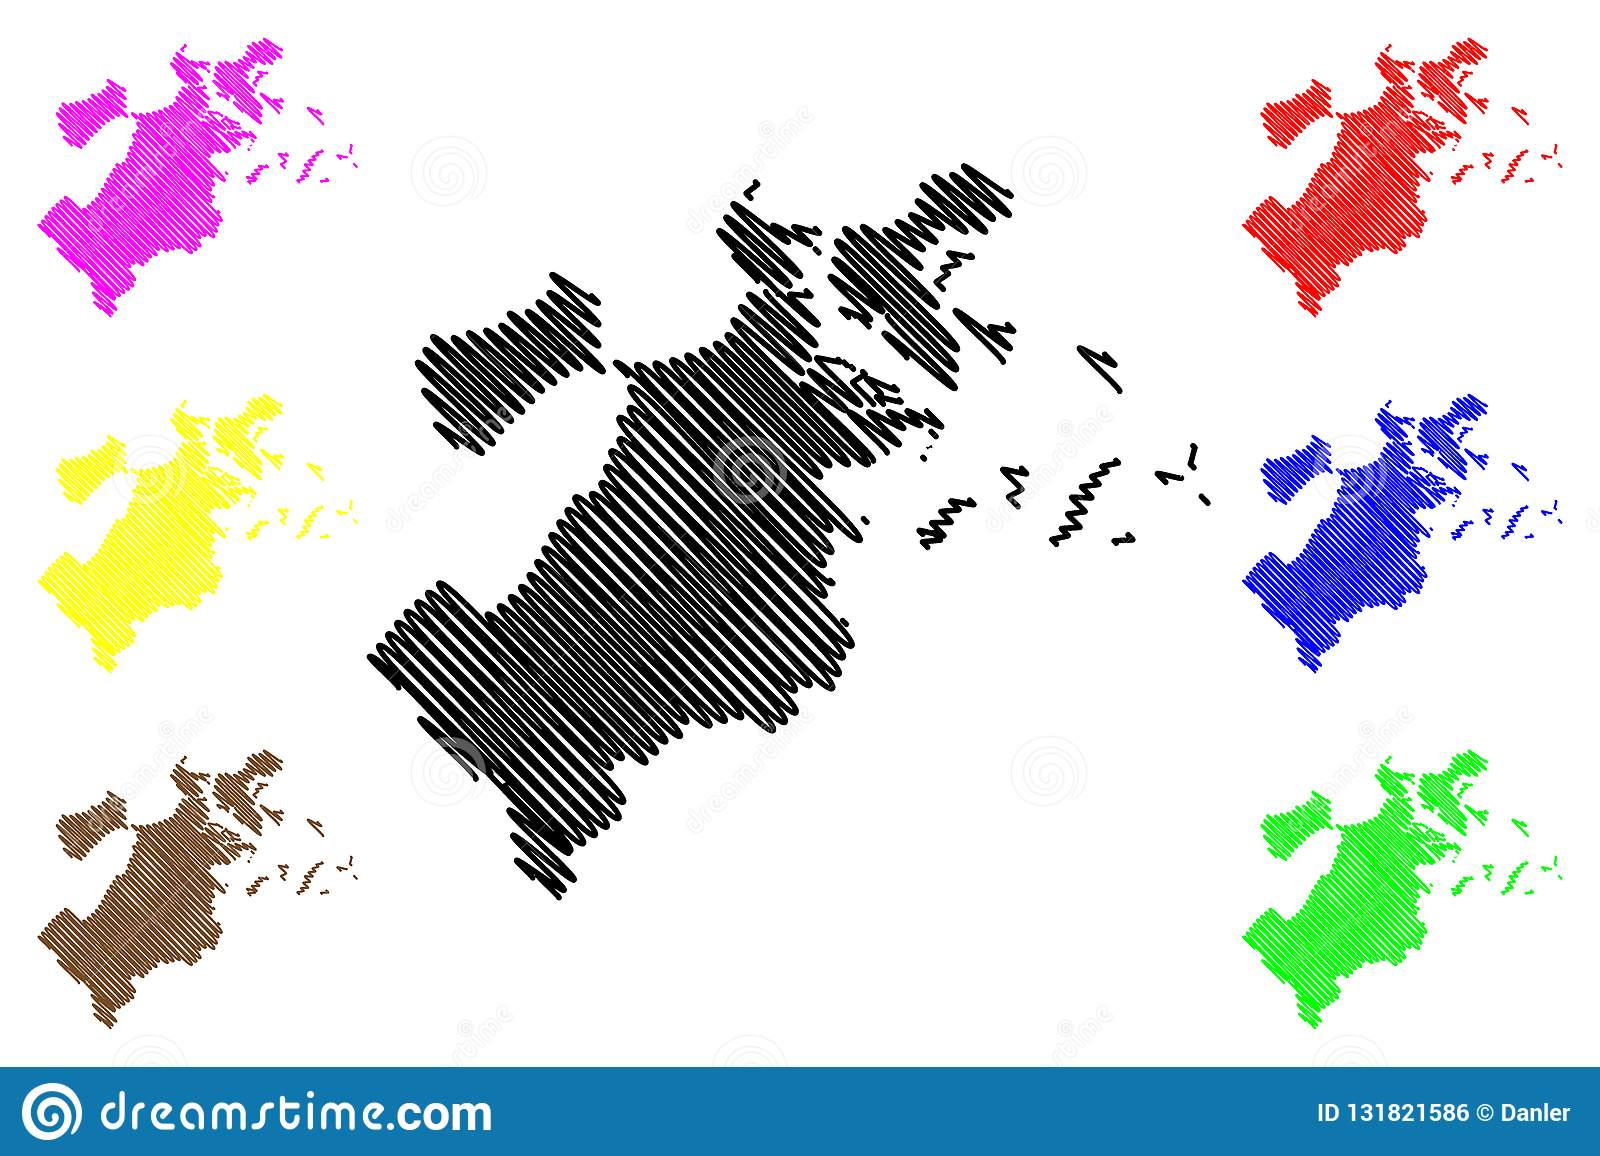 Boston City map vector stock vector. Illustration of american ...